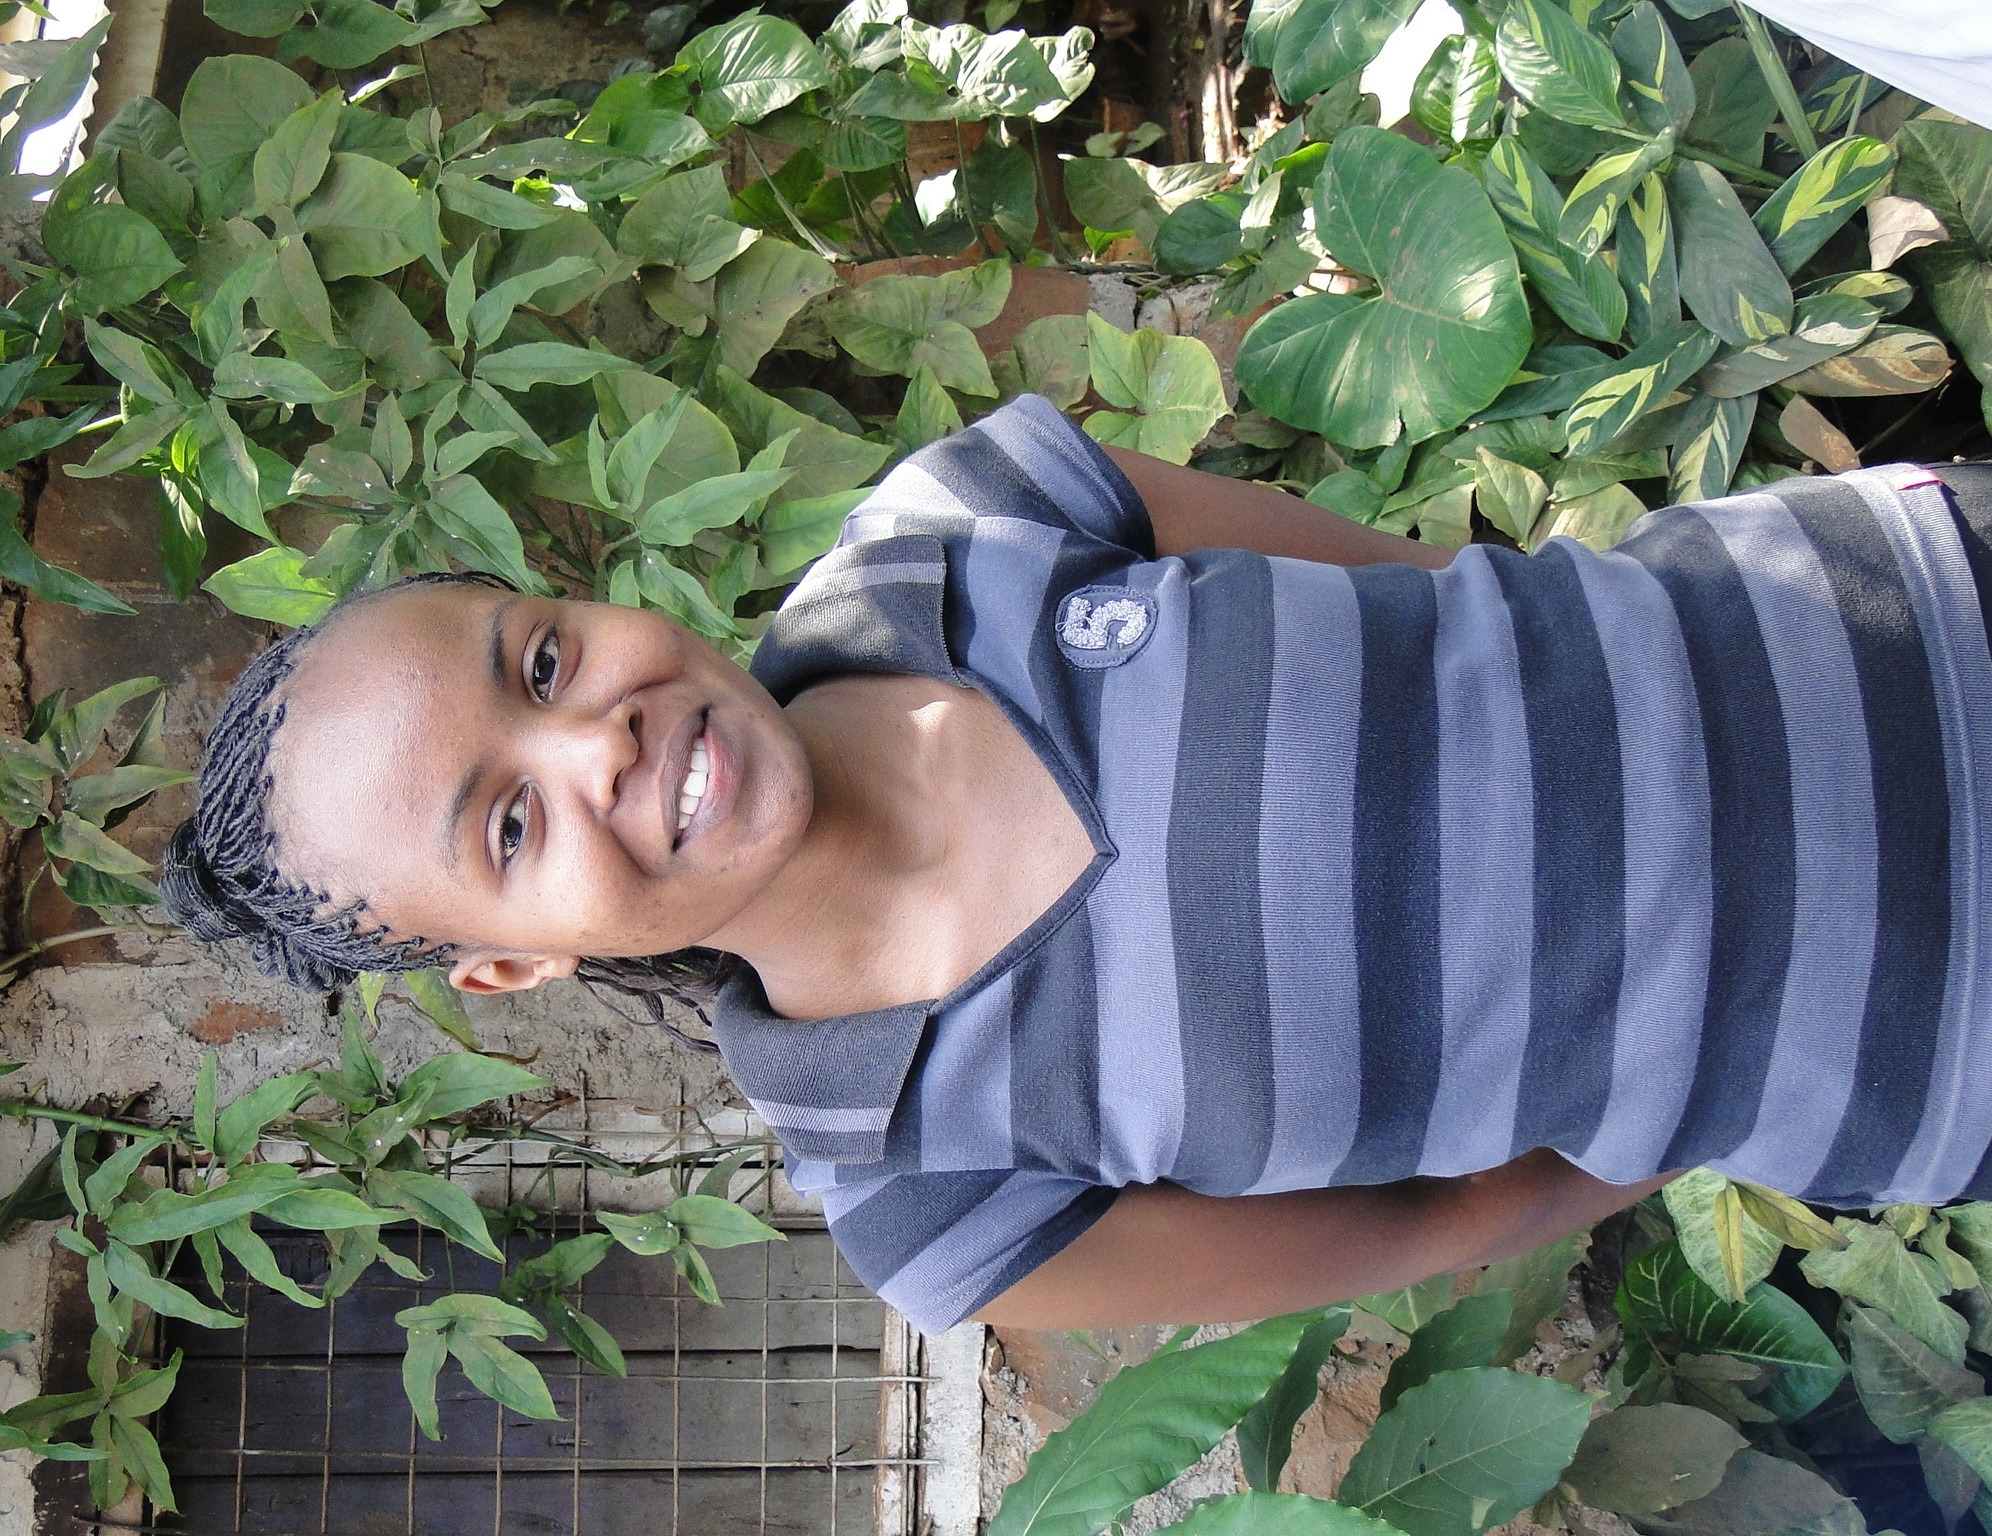 Terssia Njeri, 23 years Grand daughter